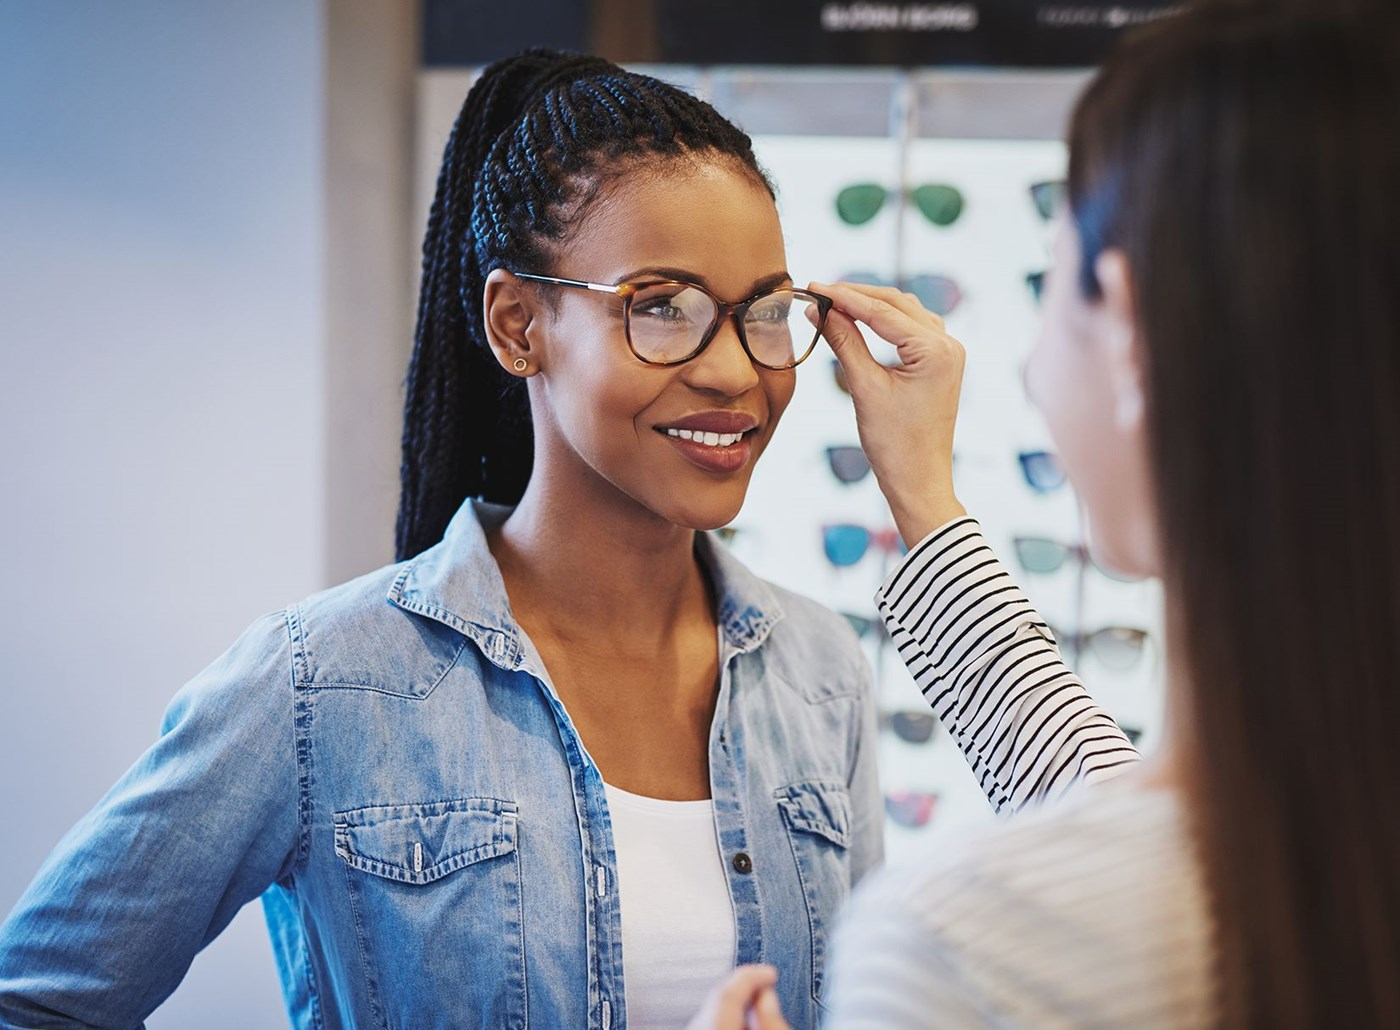 Woman in an optician trying on eyeglasses with Hoya Vision lenses